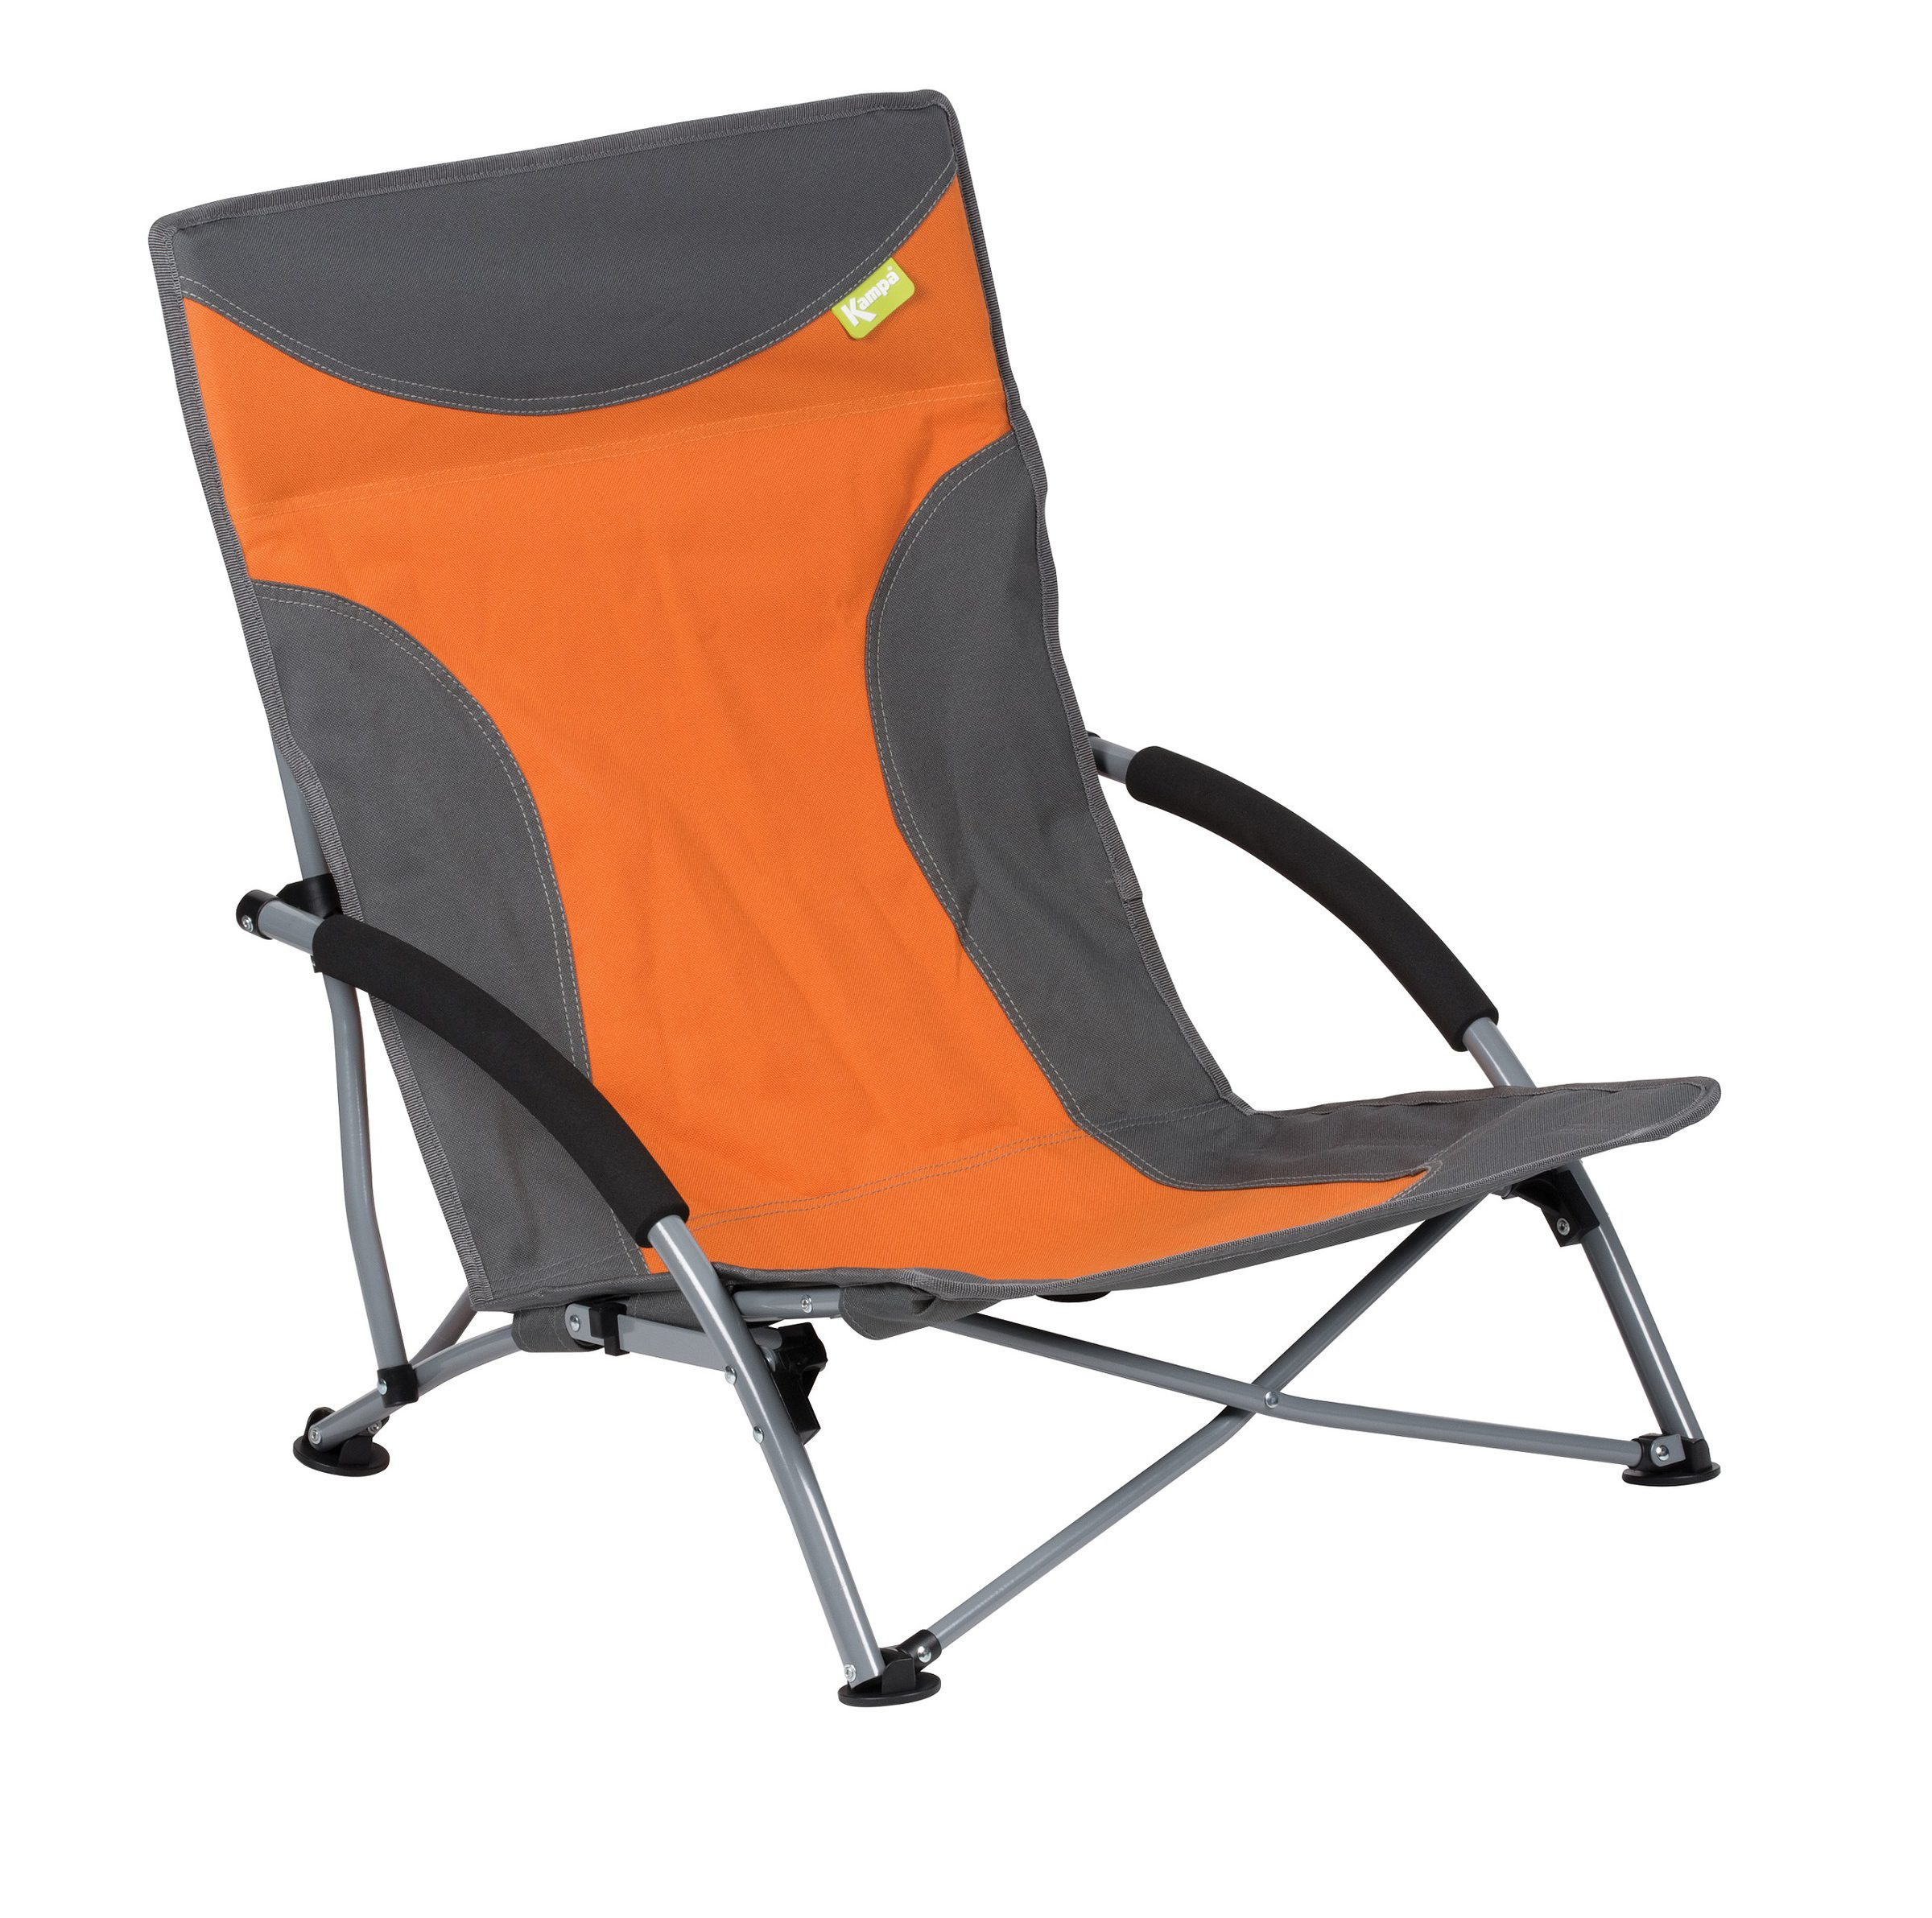 outdoor revolution posture xl chair mobile phone holder uk camp chairs camping furniture norwich